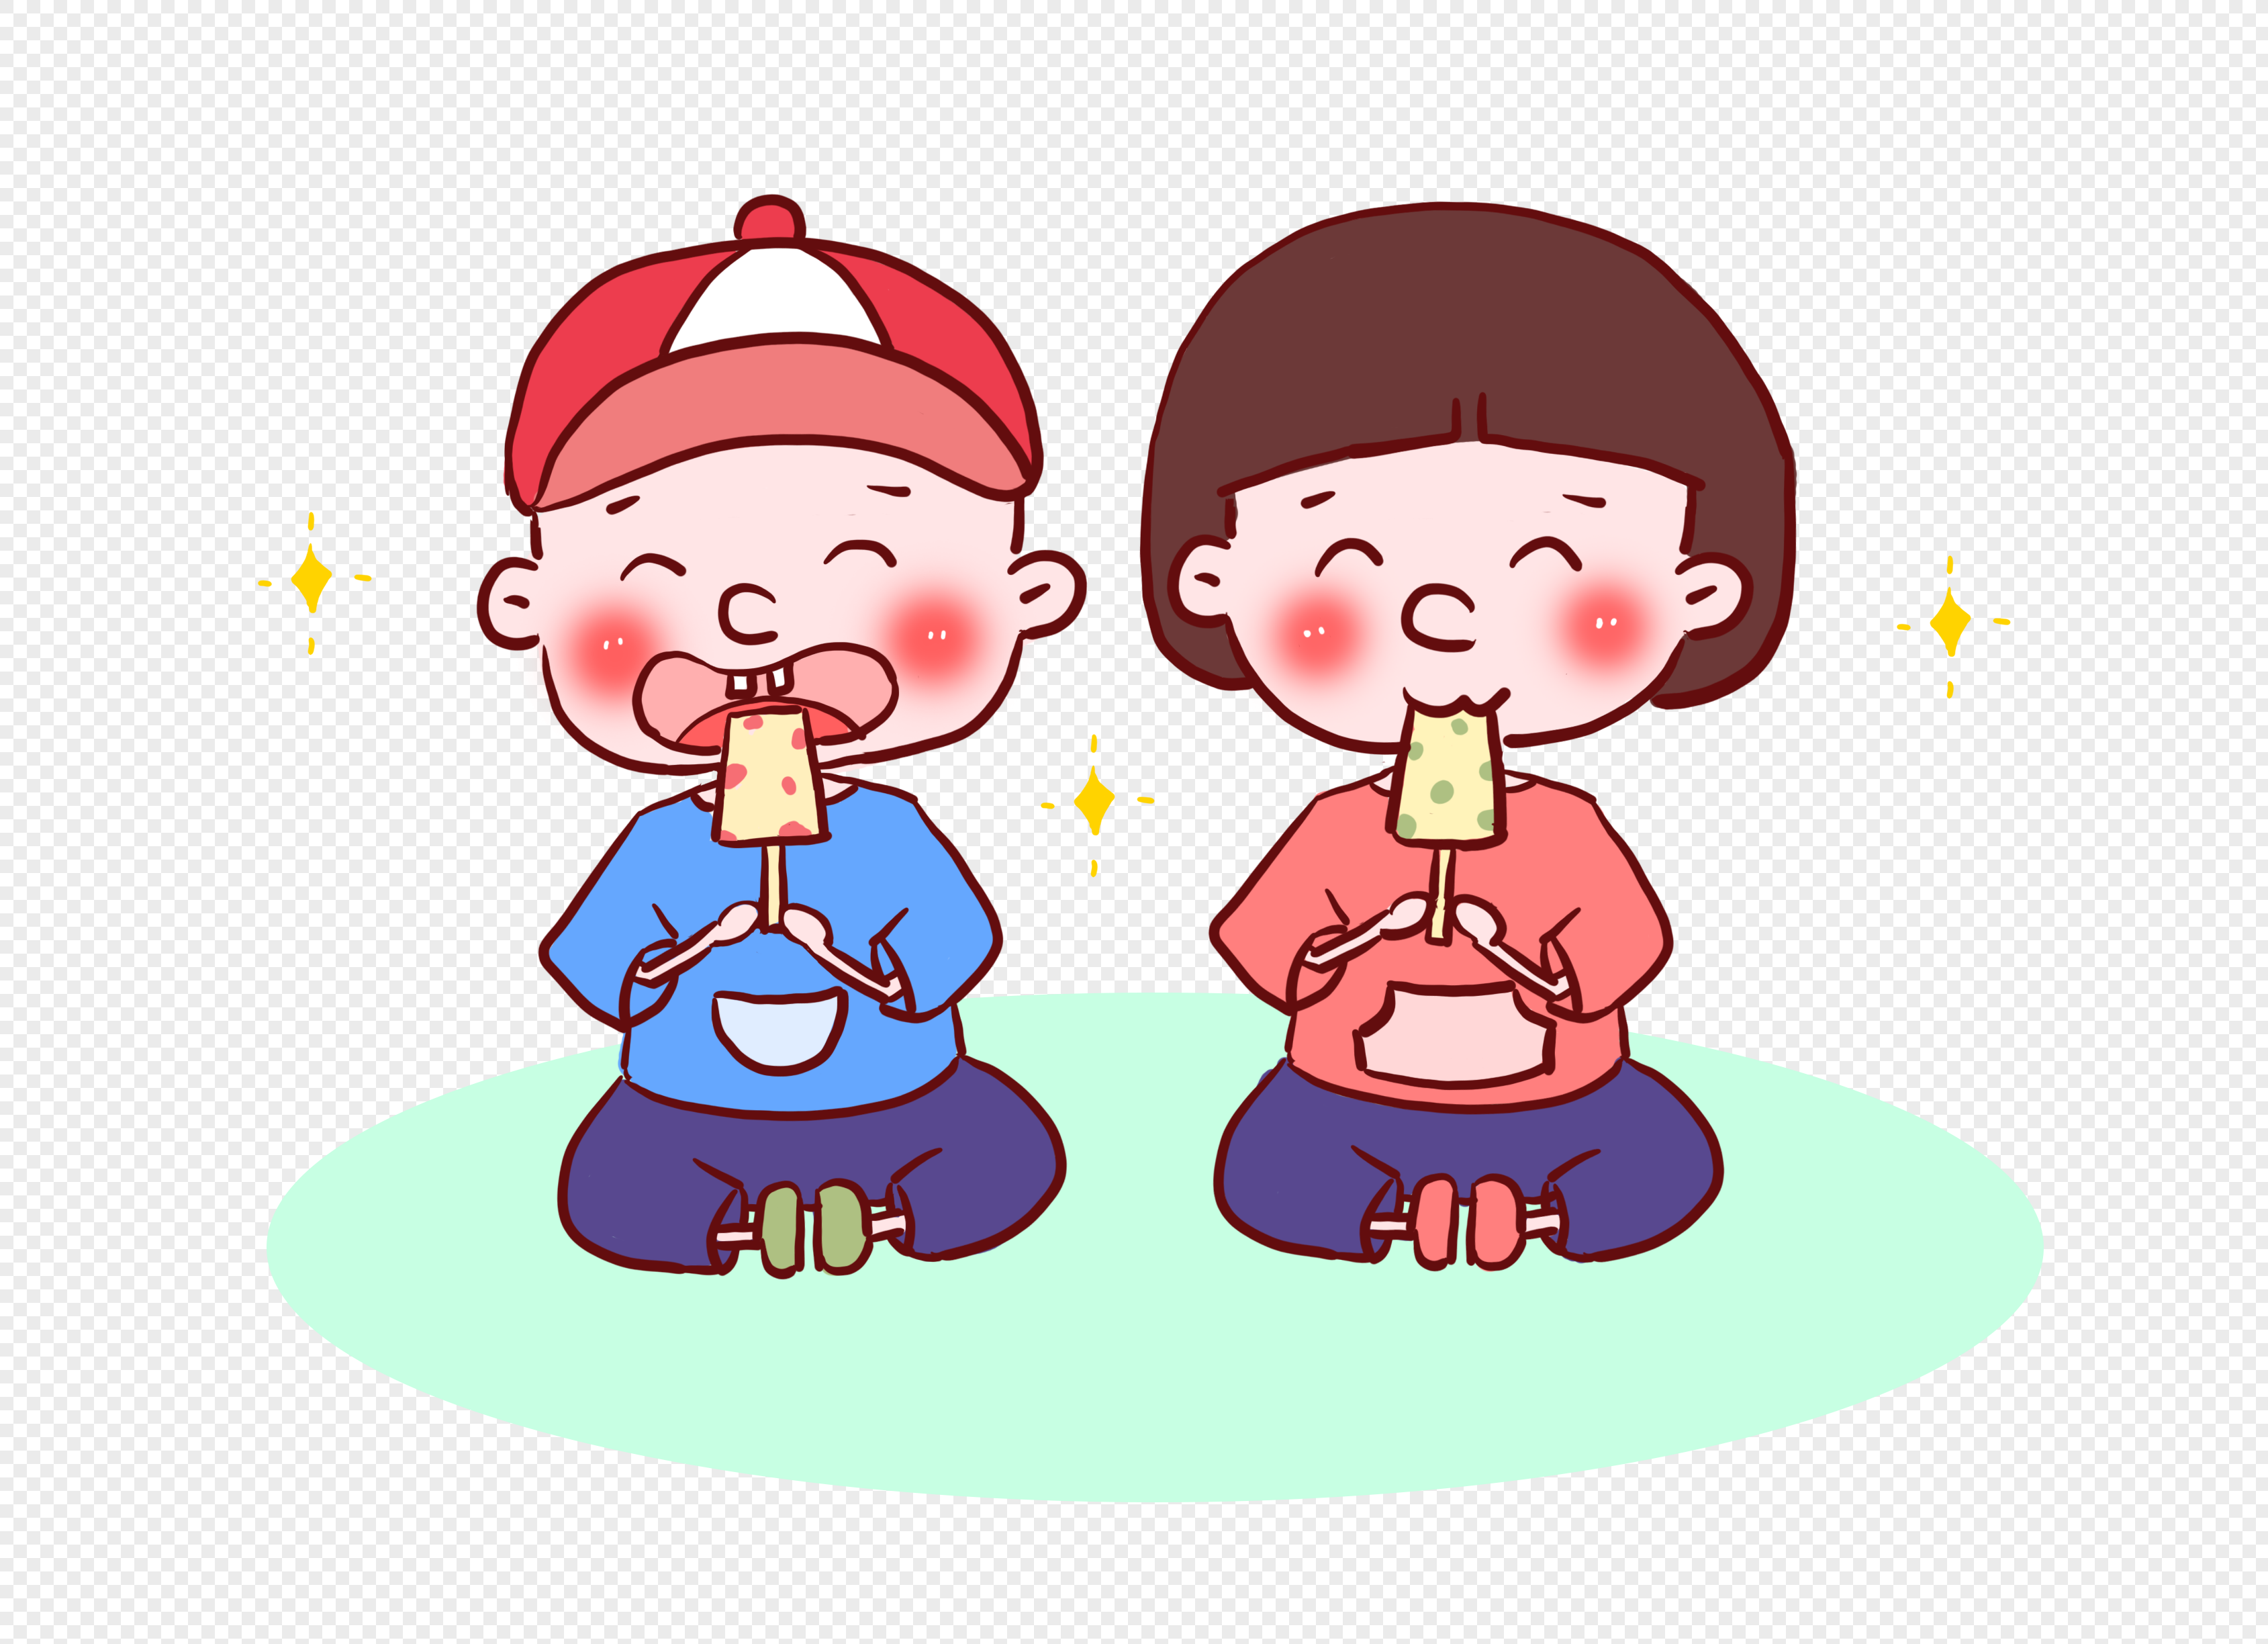 Child eating popsicle png image_picture free download ...